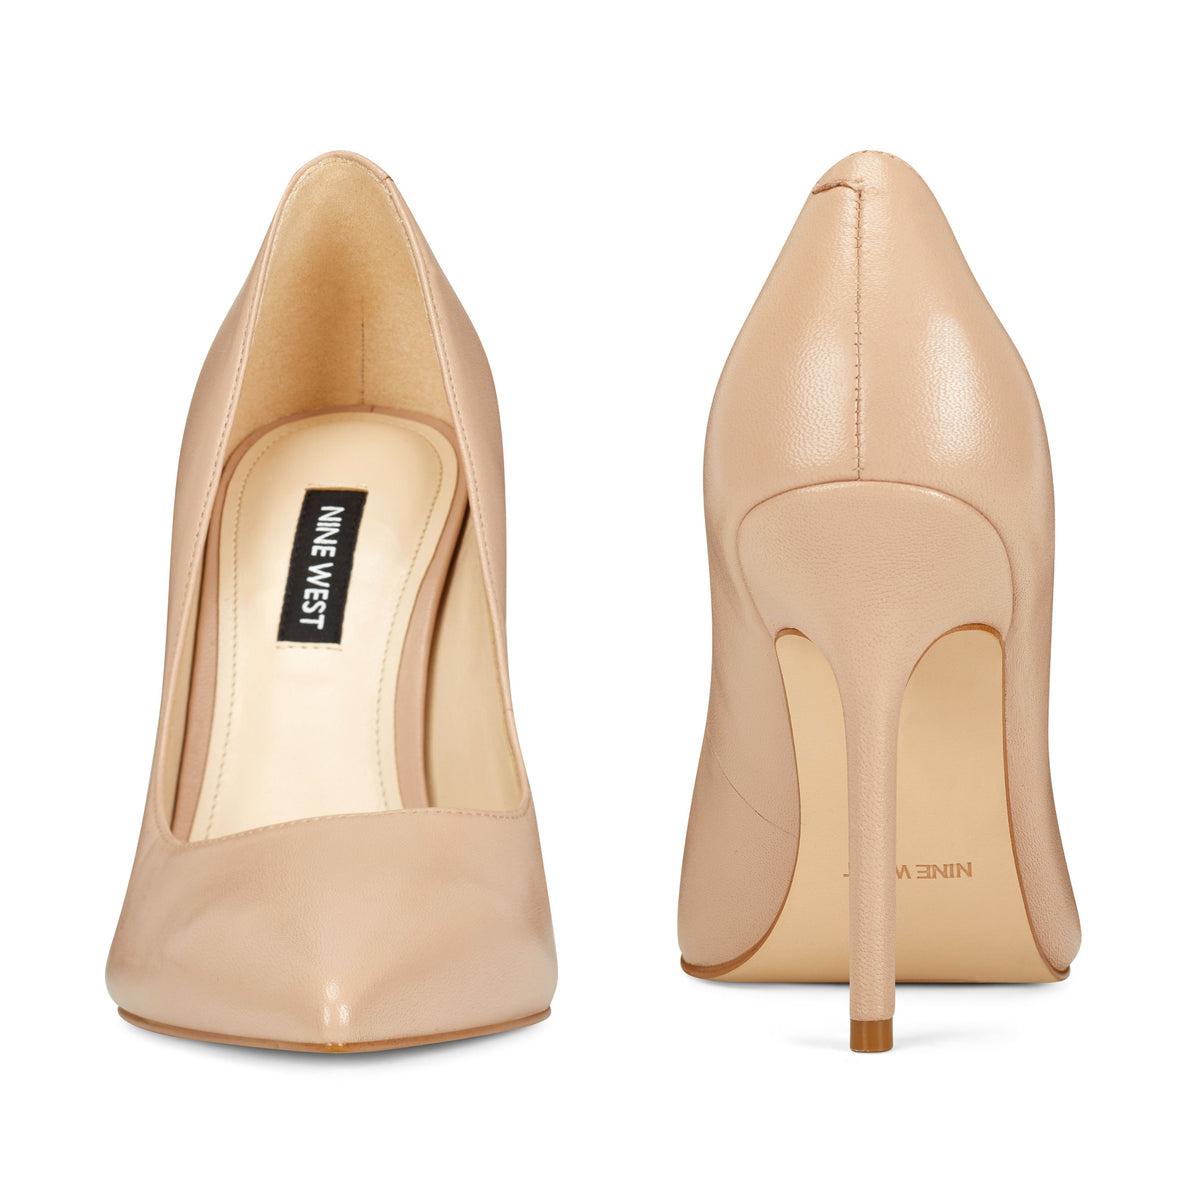 bliss-pointy-toe-pumps-in-light-natural-leather